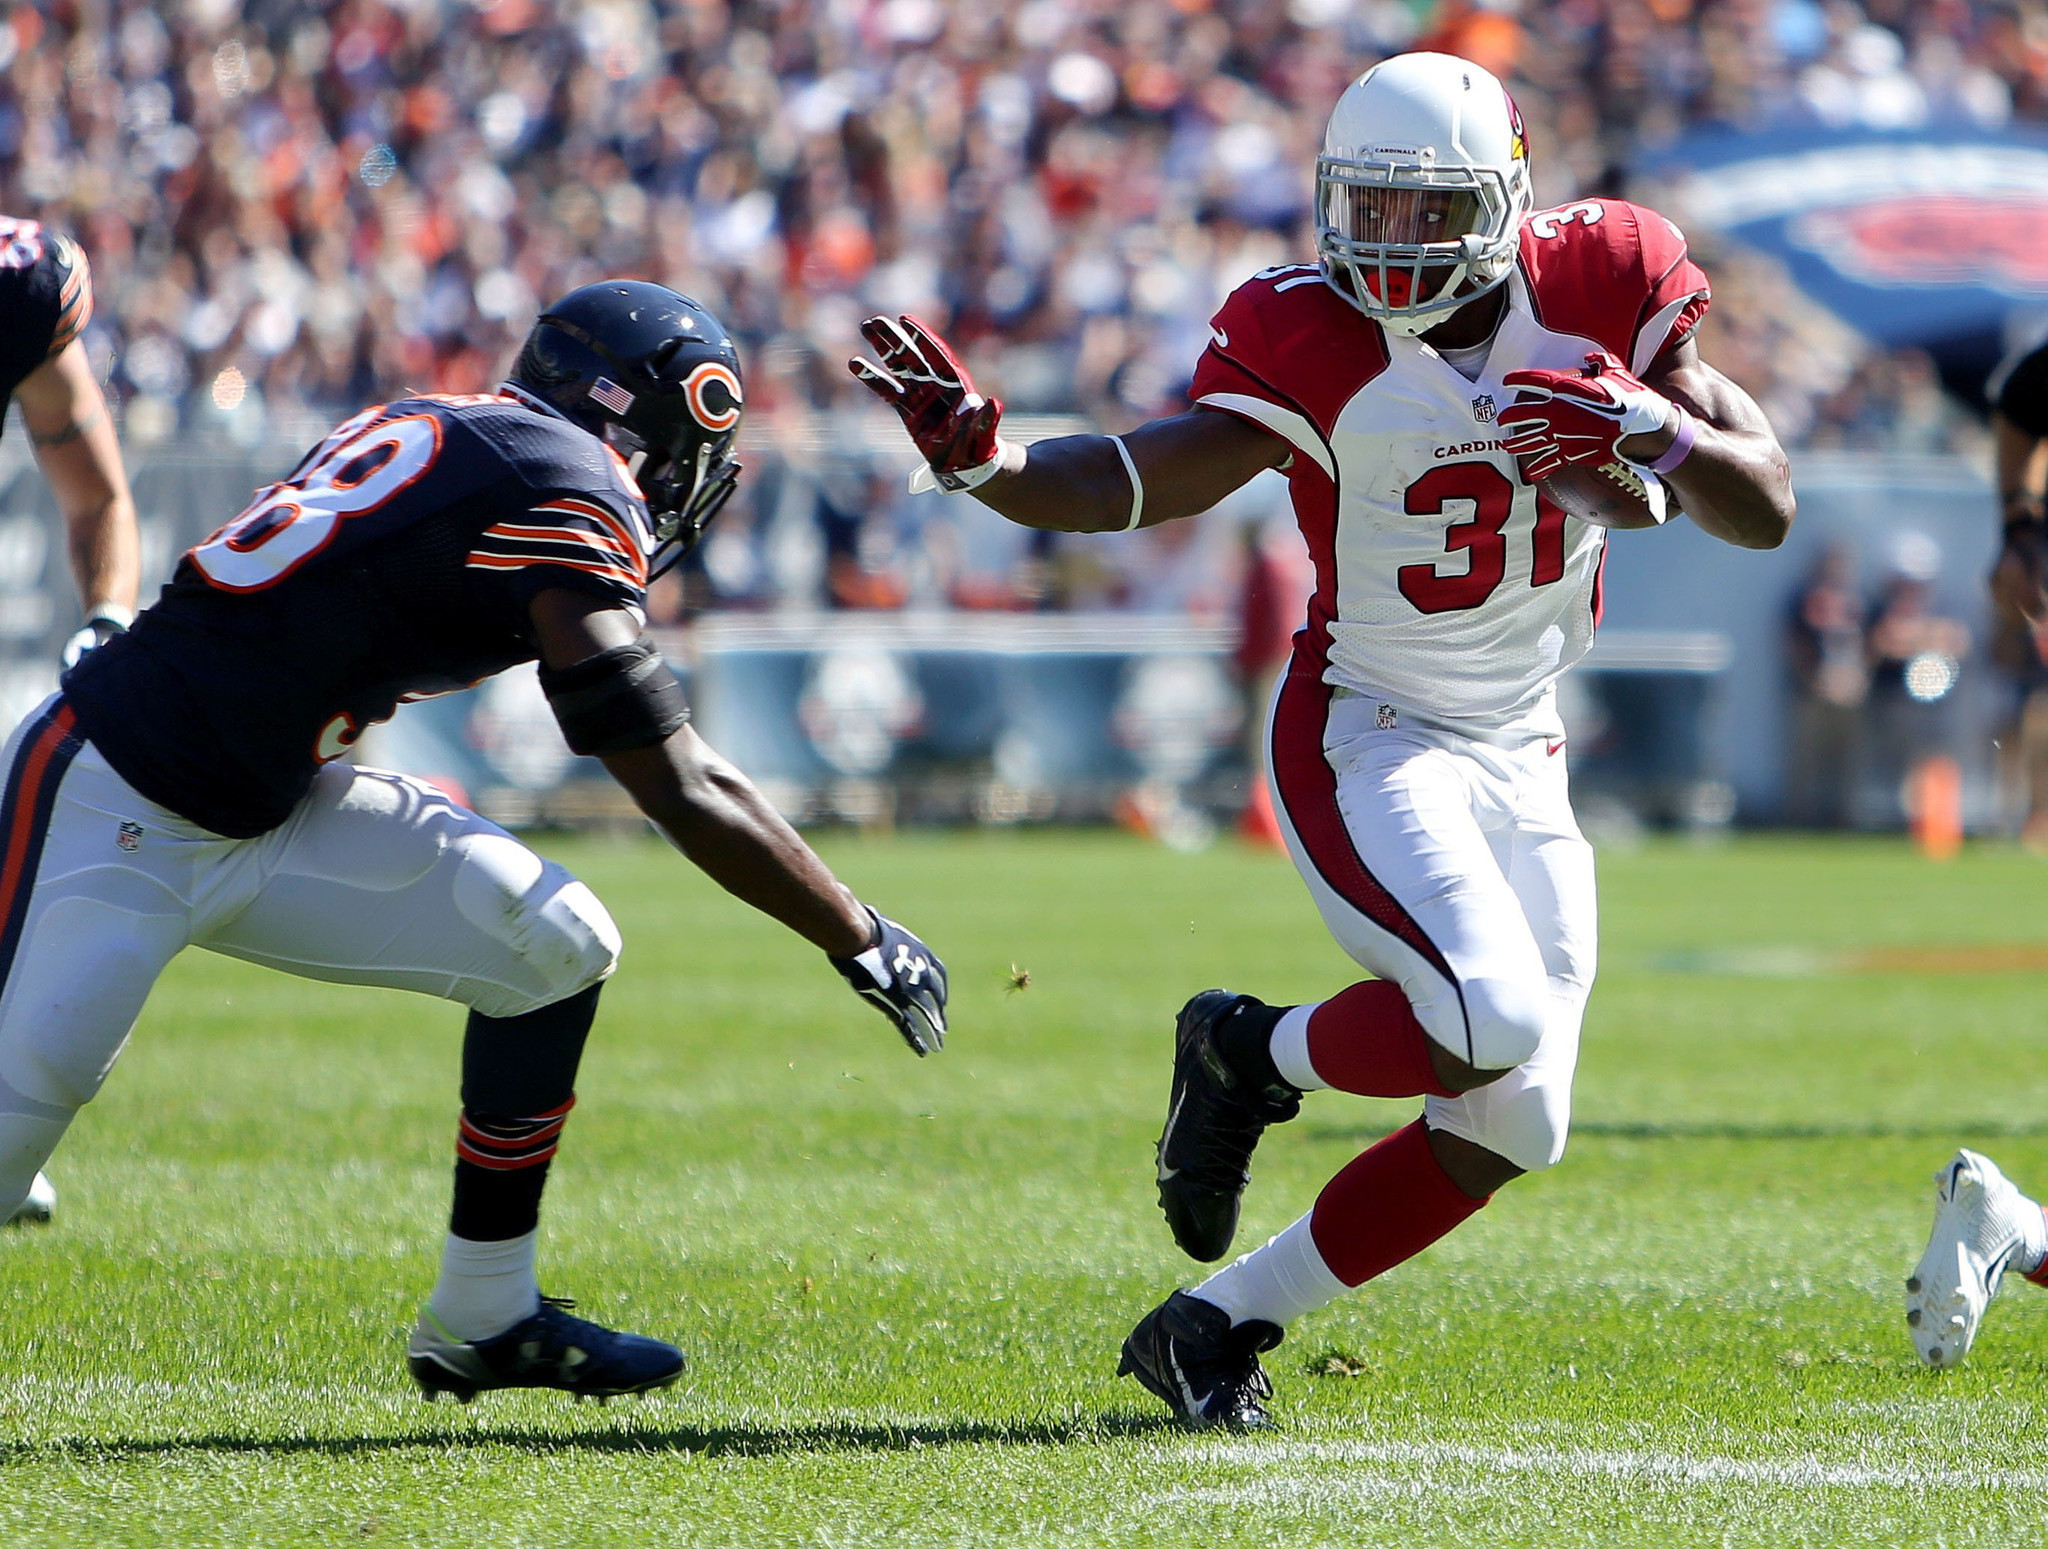 NFL rookie David Johnson already a Hall of Famer or at least his